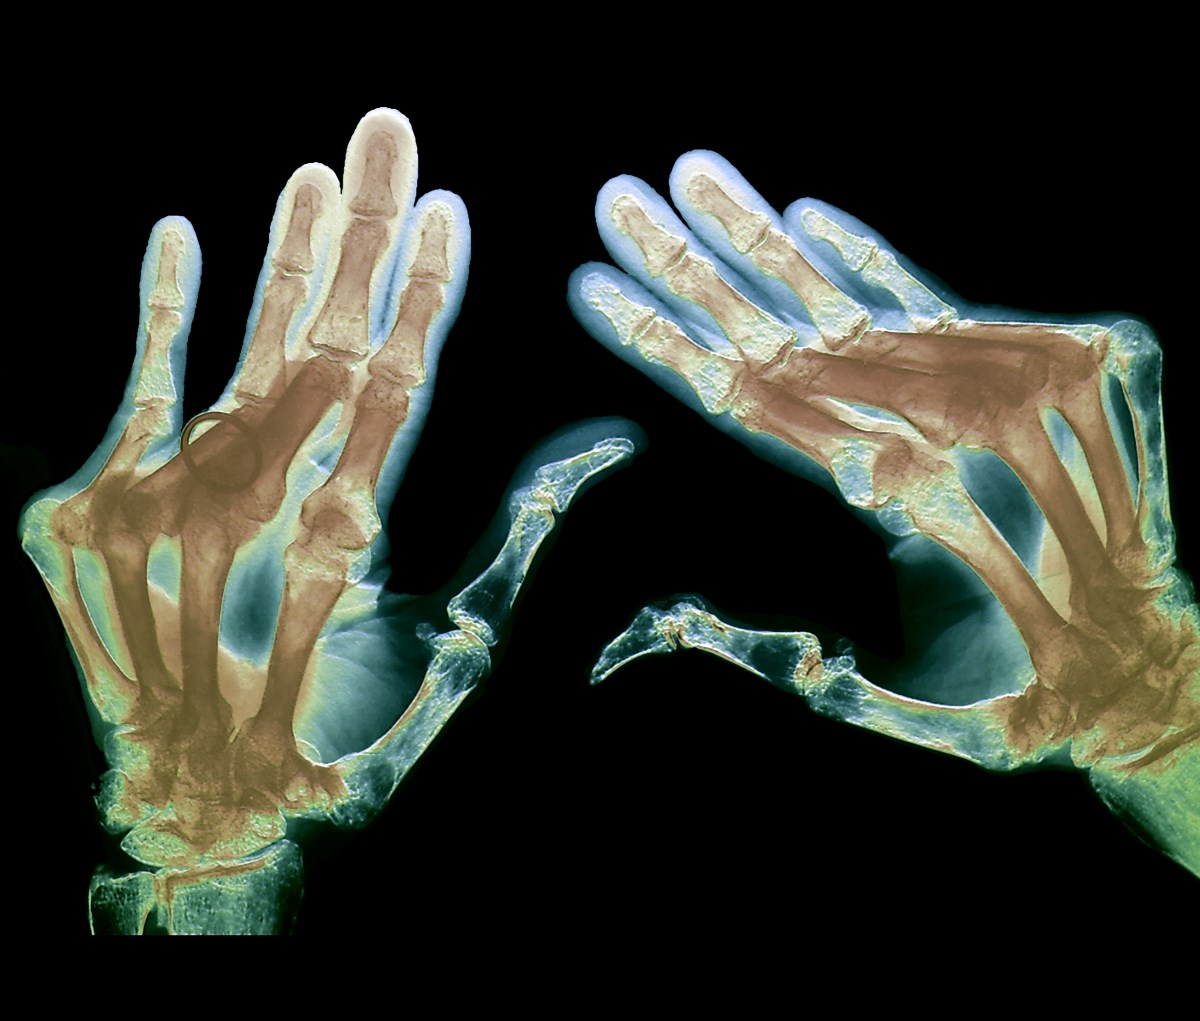 Colored X-ray of the hands of a 74 year old patient with severe rheumatoid arthritis in all of the fingers. <i>Image credit: Zephyr/Science Source.</i>